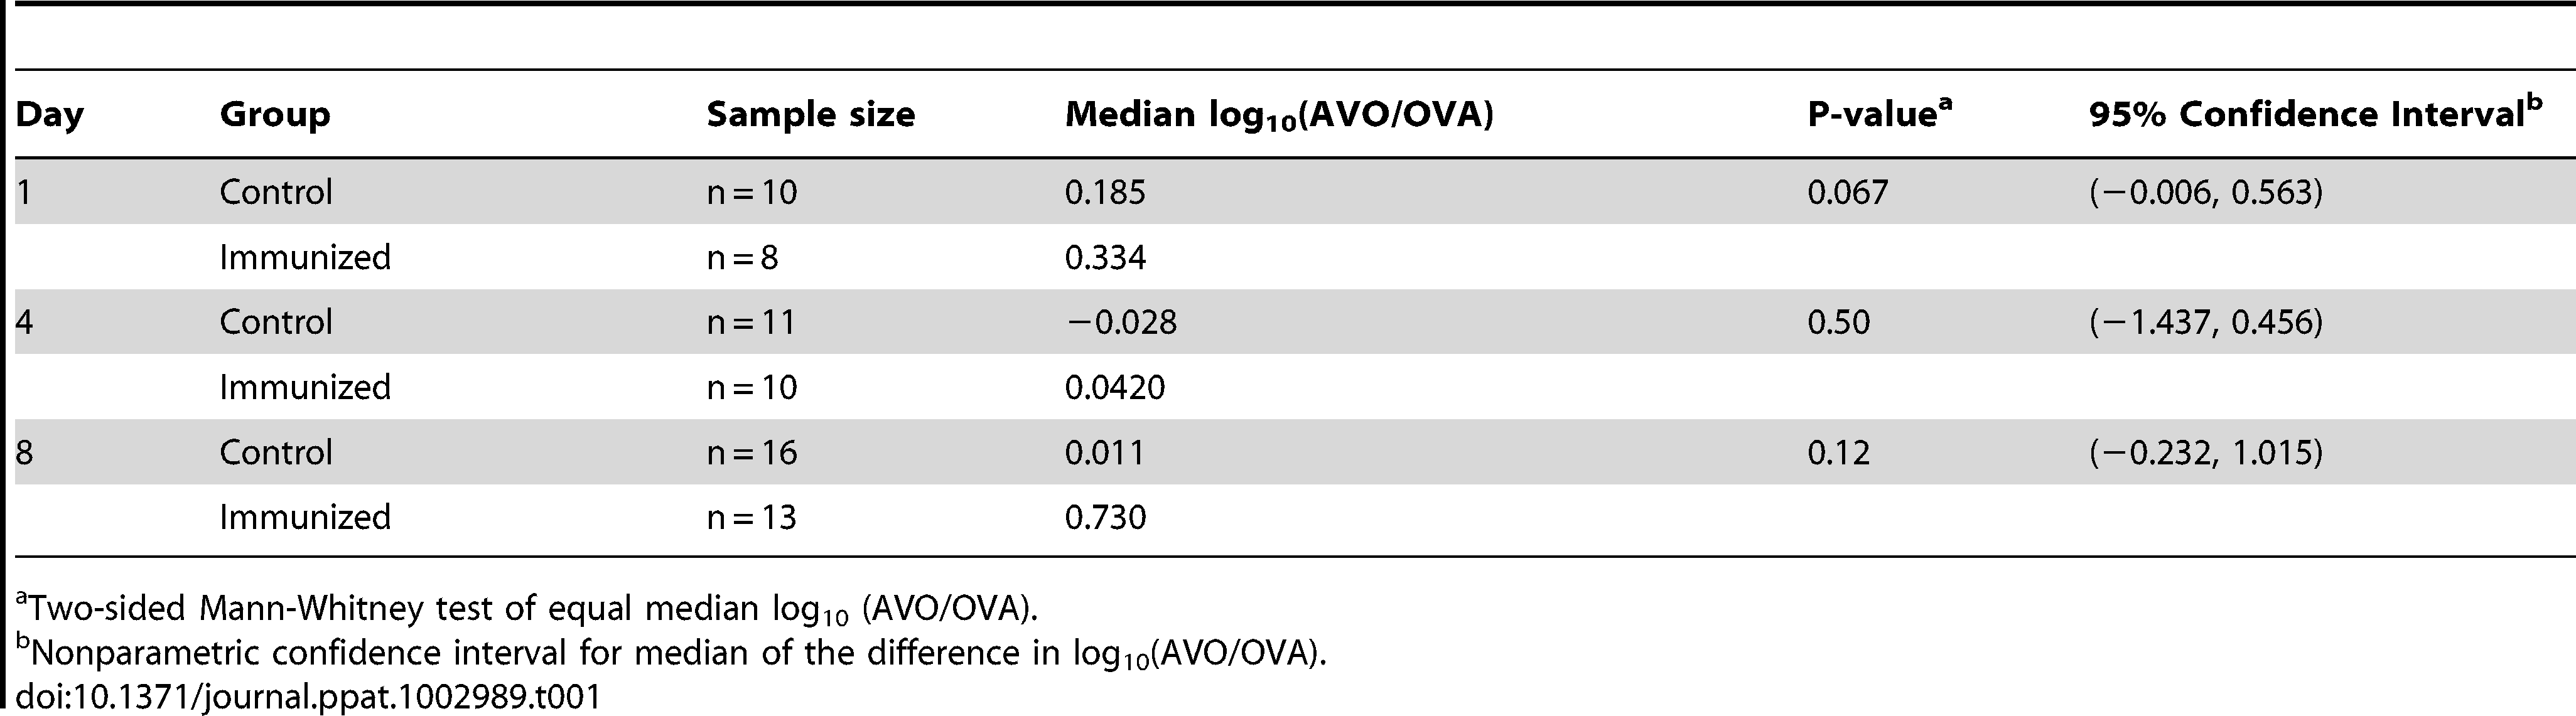 Analysis of competitive advantage for the antigen-negative strain.